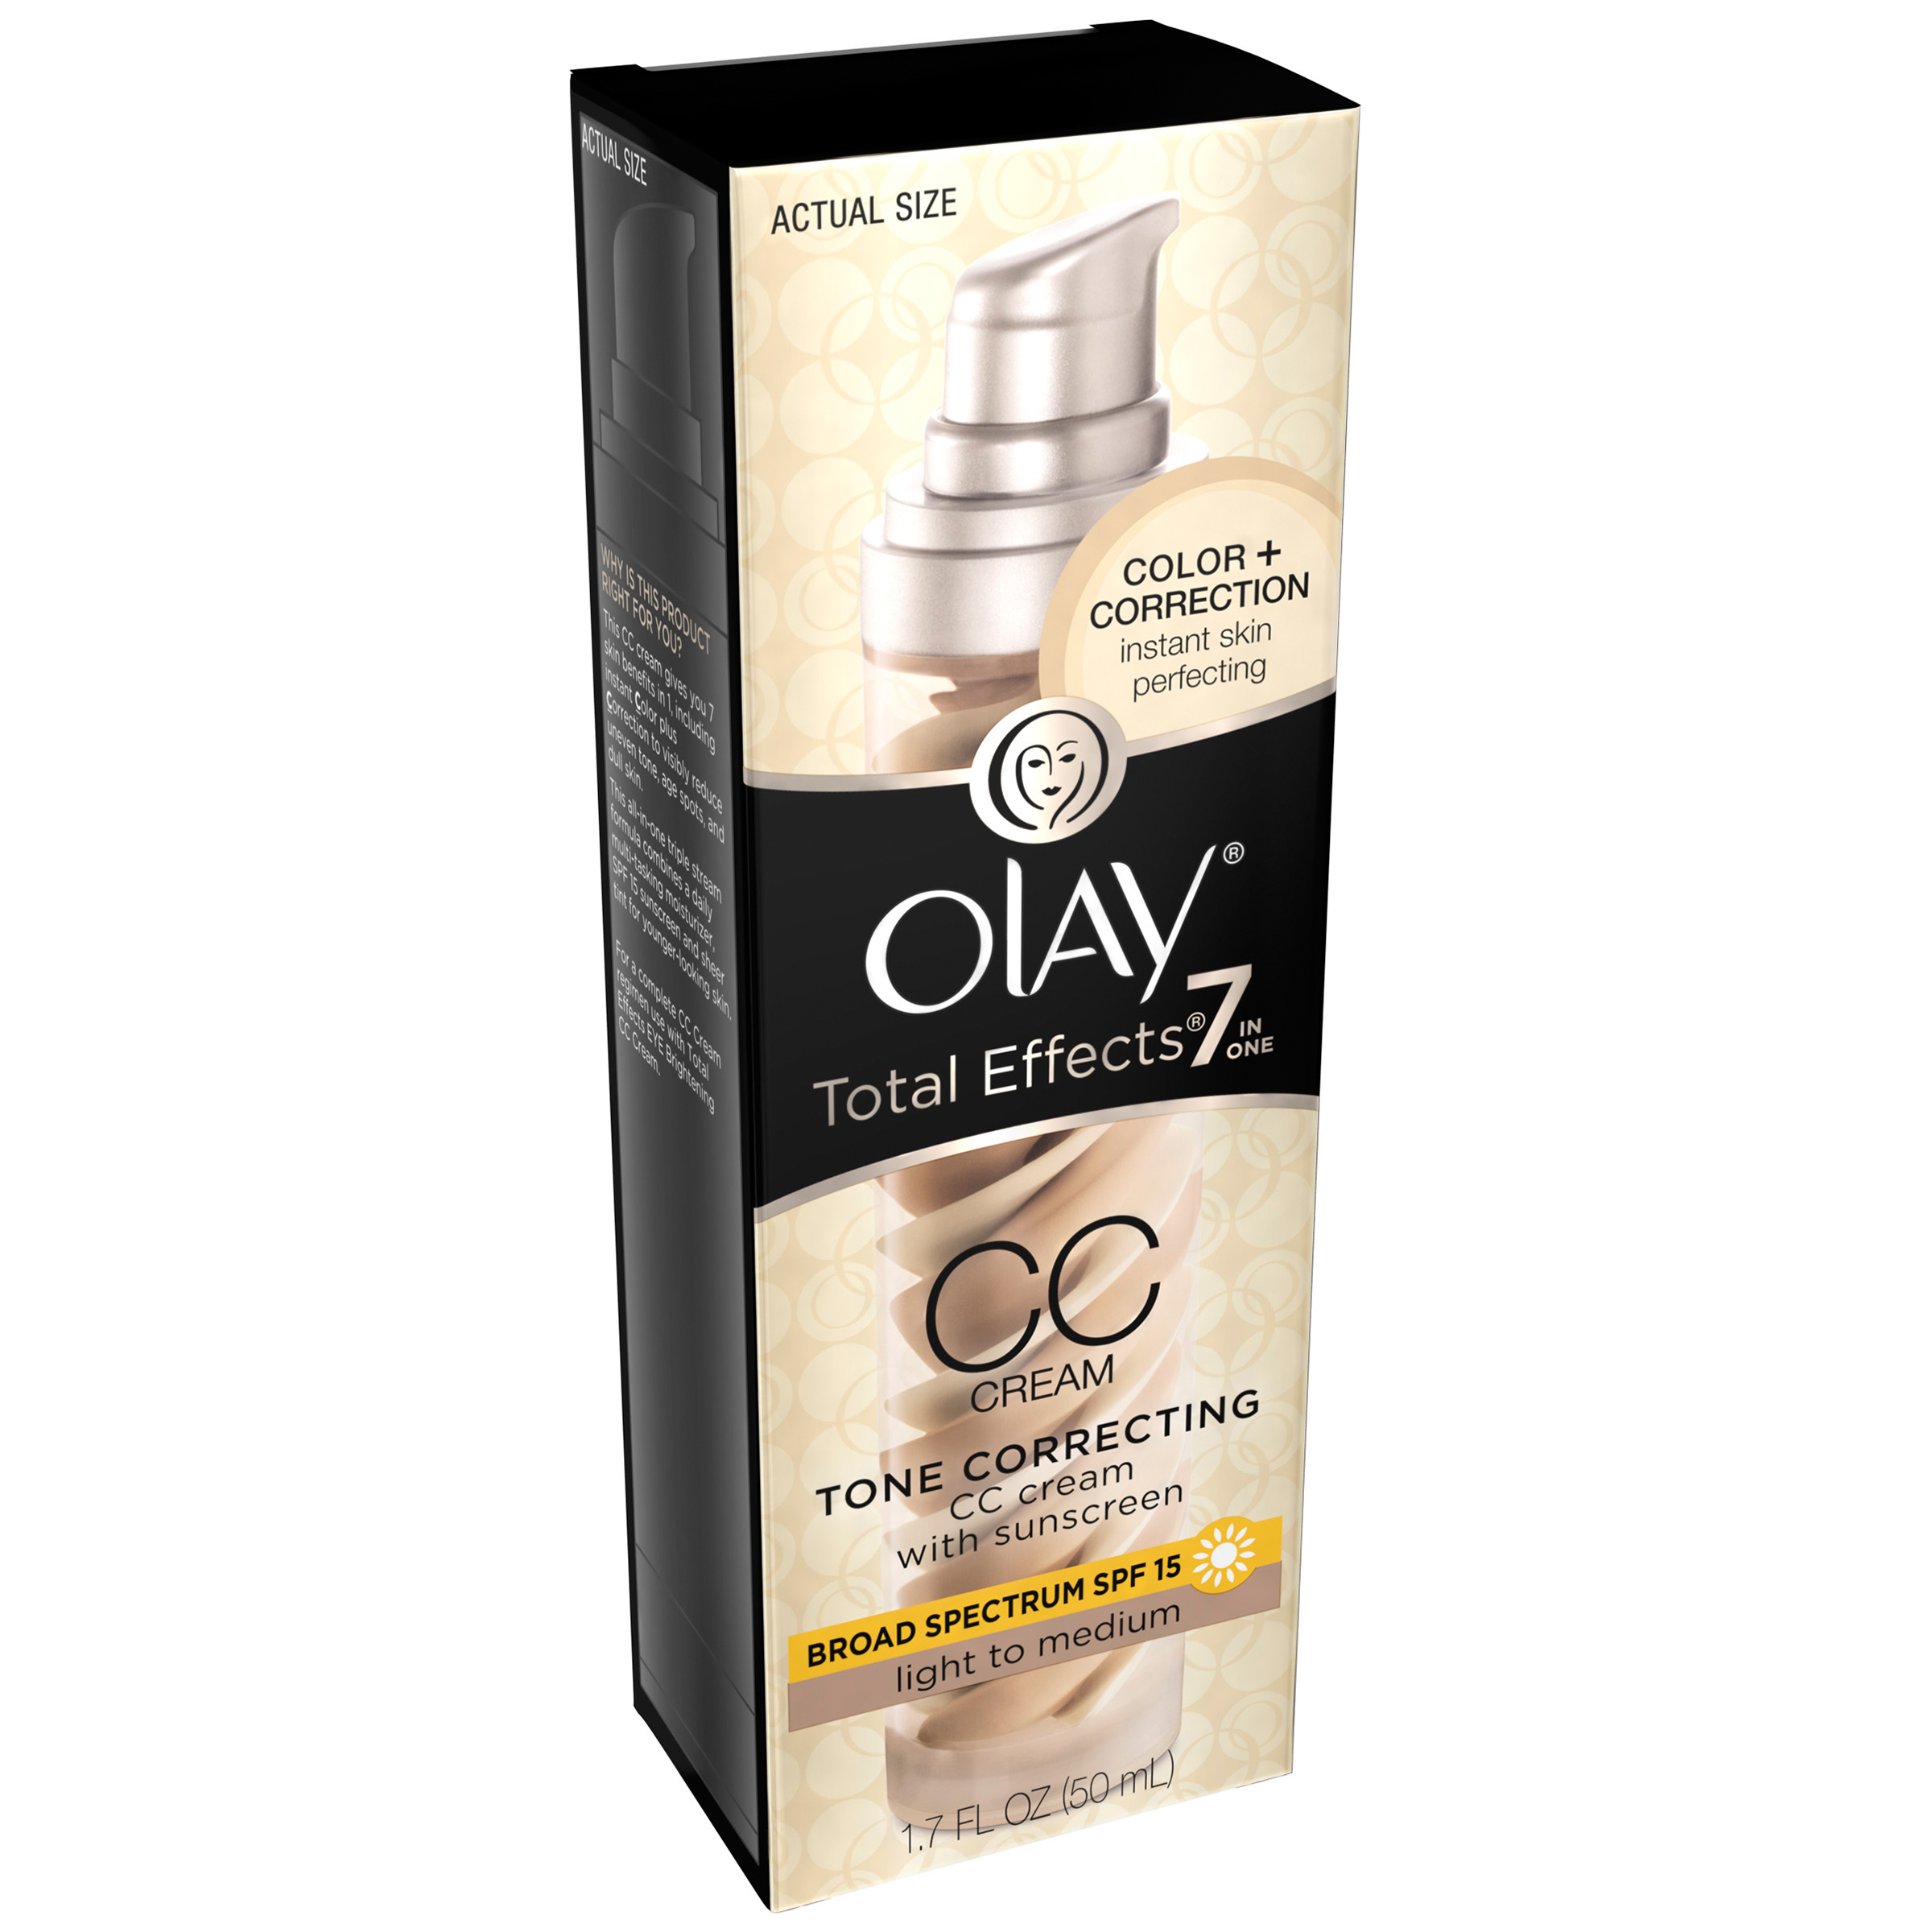 Olay Total Effects 7 in One Tone Correcting Color + Correction Cream Broad Spectrum,SPF 15,1.7 fl oz